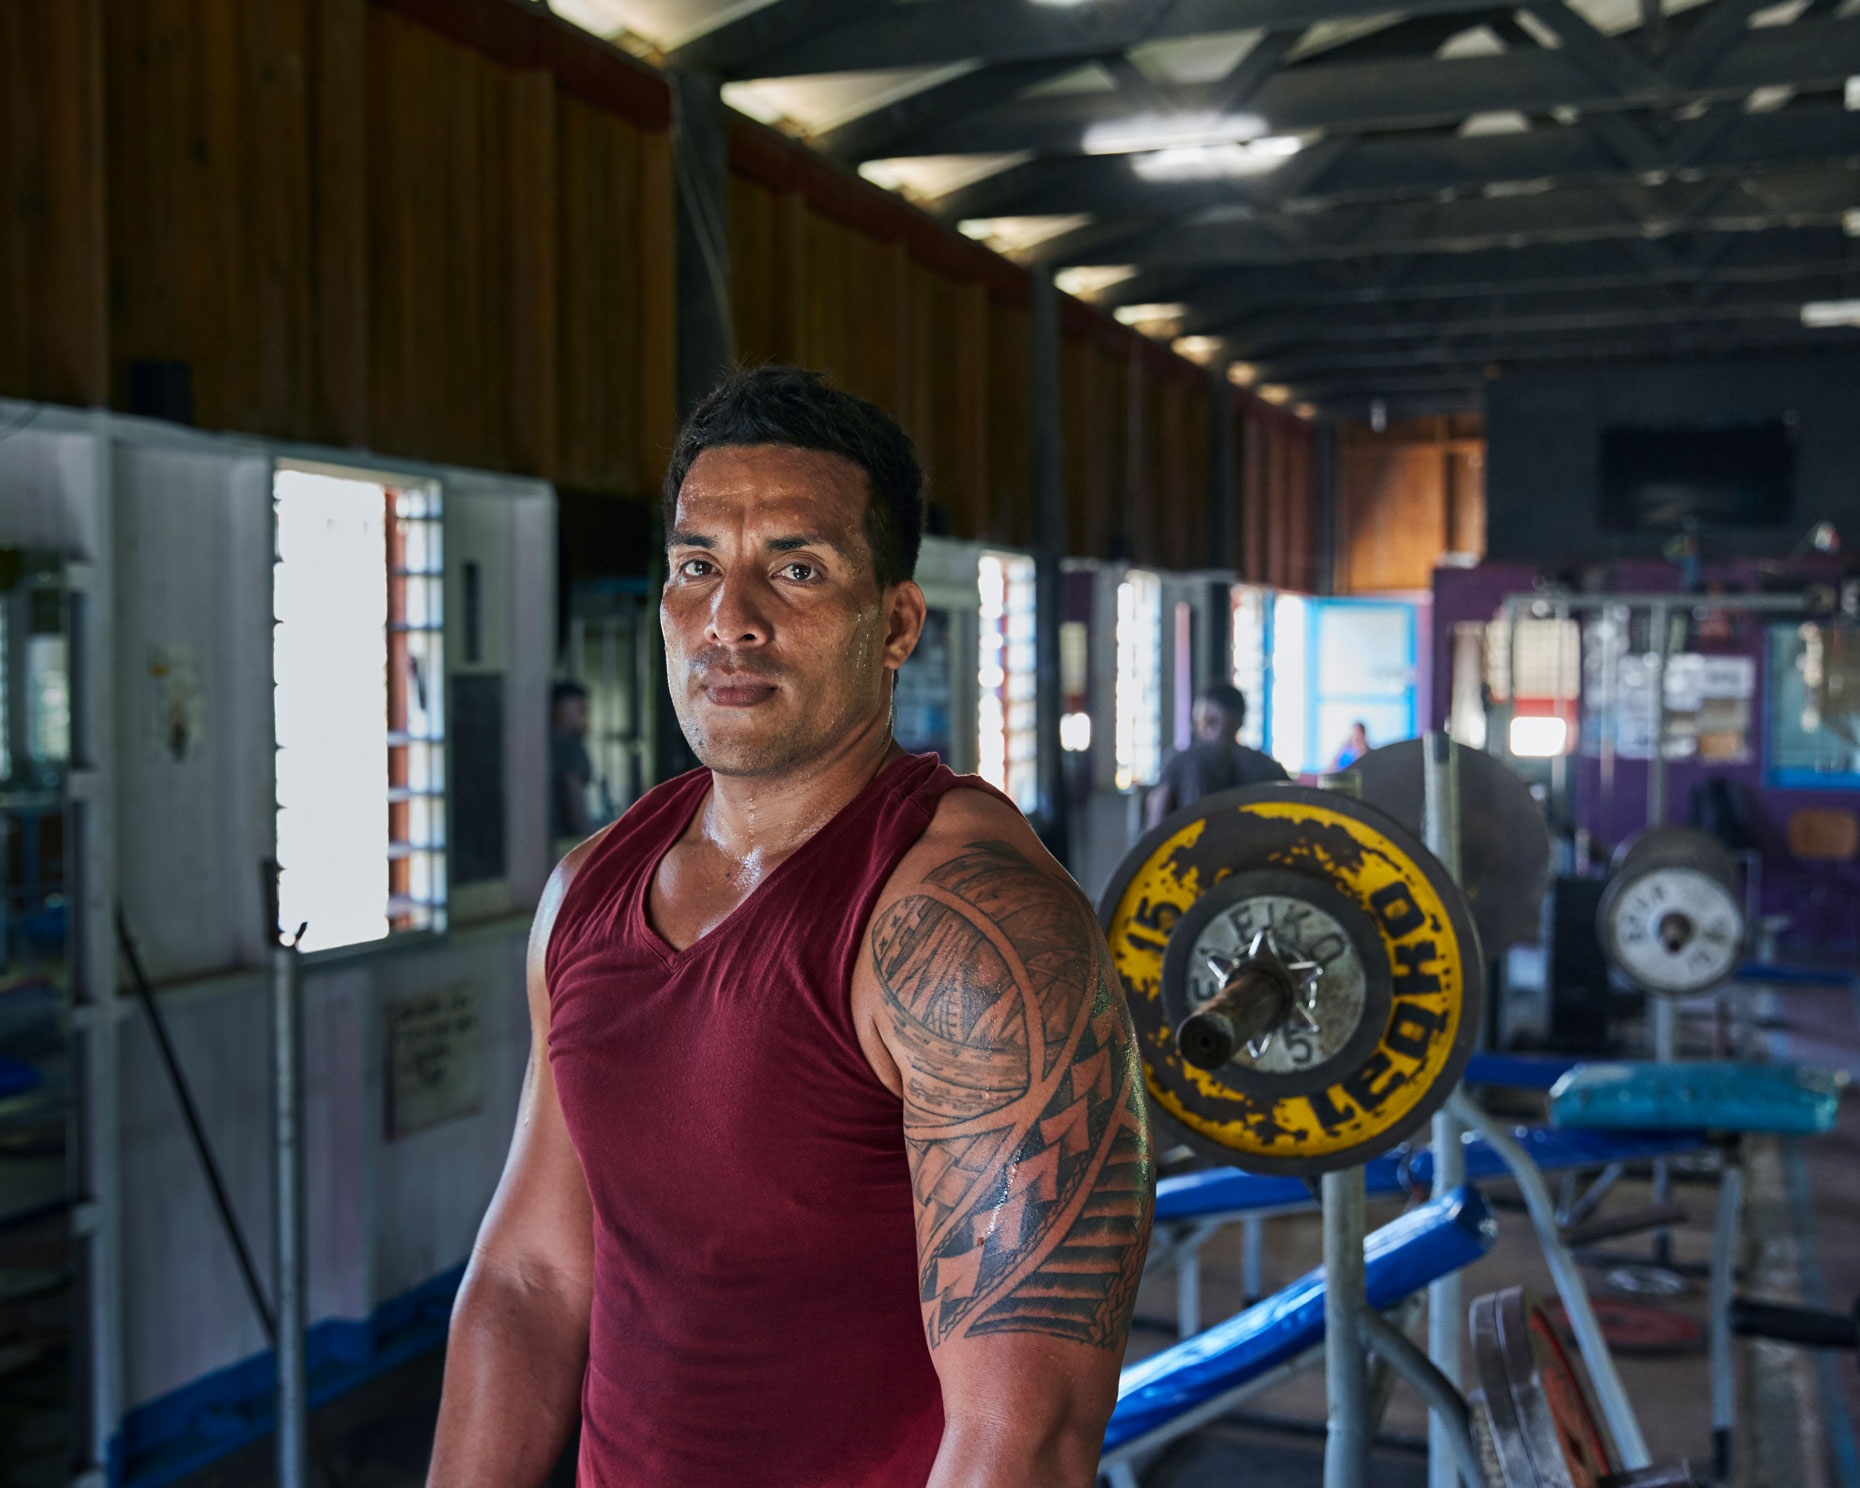 All Races Gym, Suva Fiji